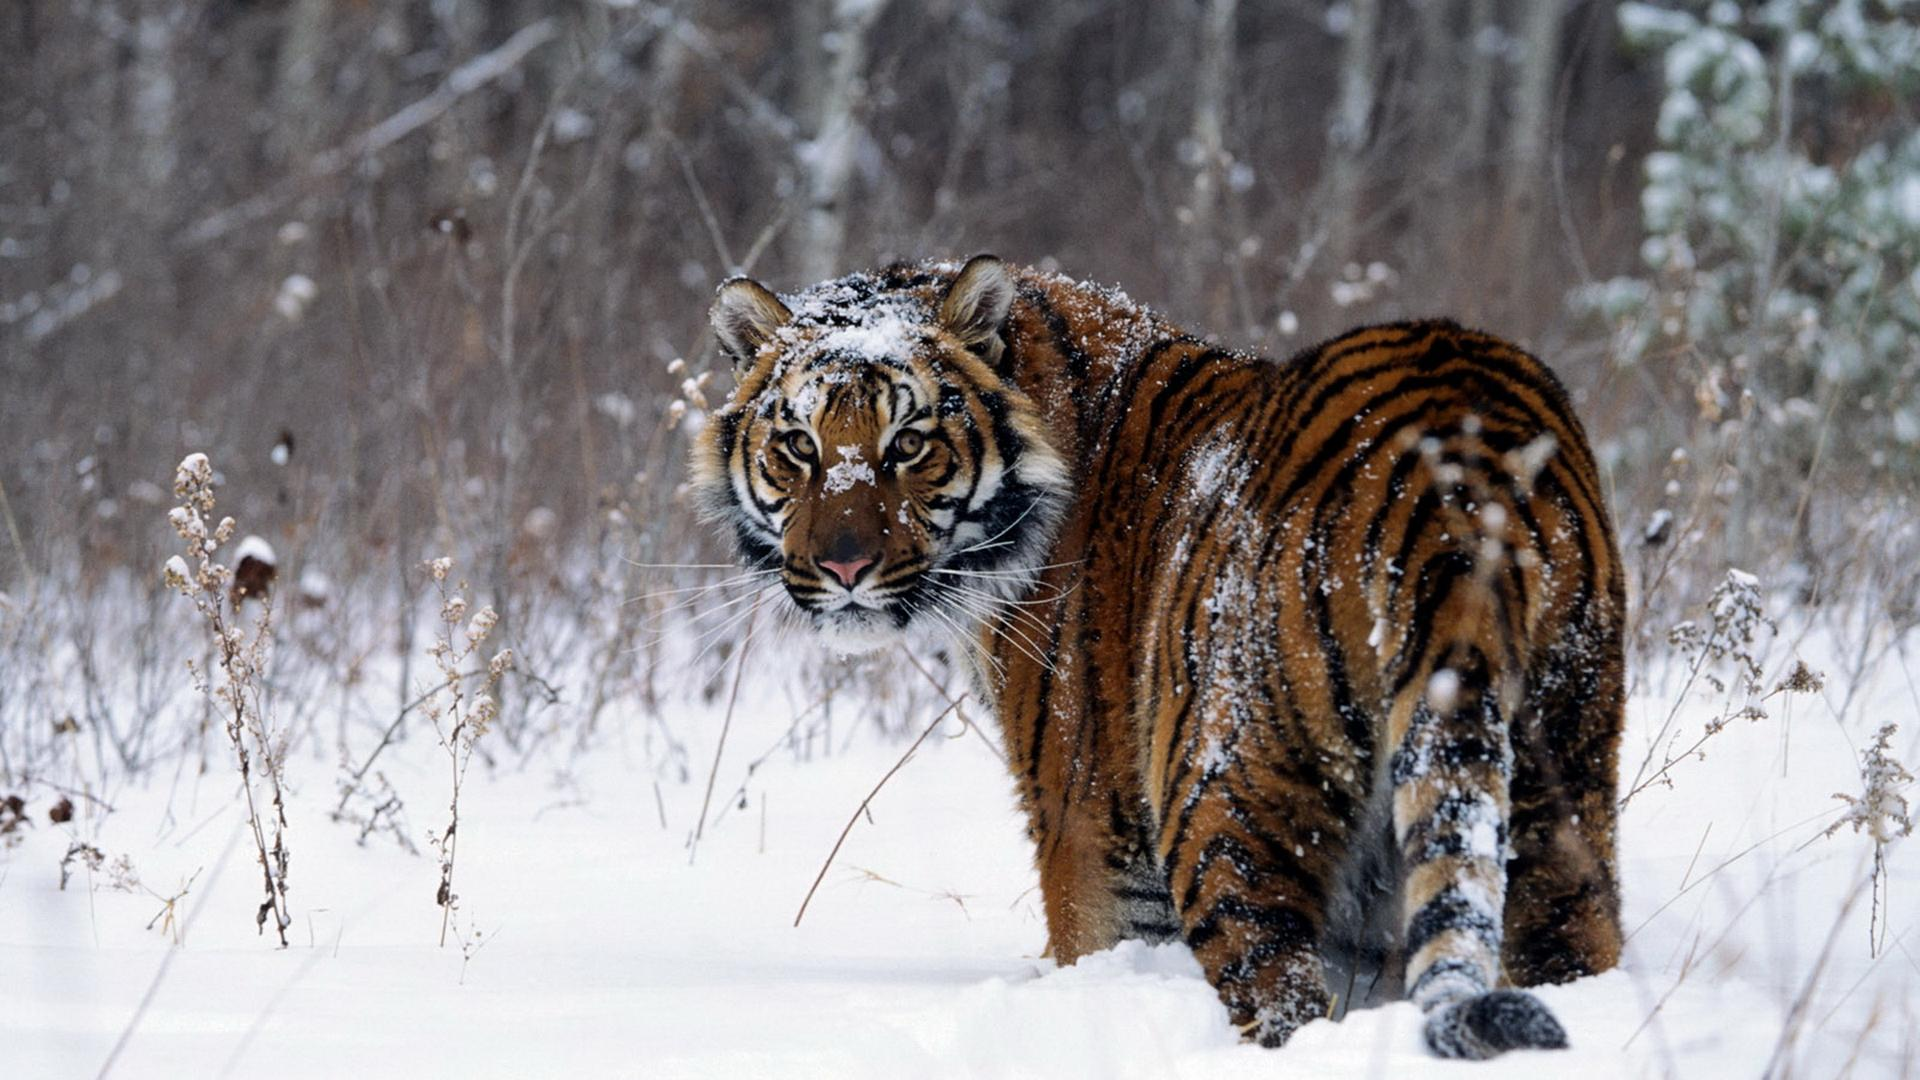 Snow Tiger HD Wallpaper | 1920x1080 | ID:40881 - WallpaperVortex.com